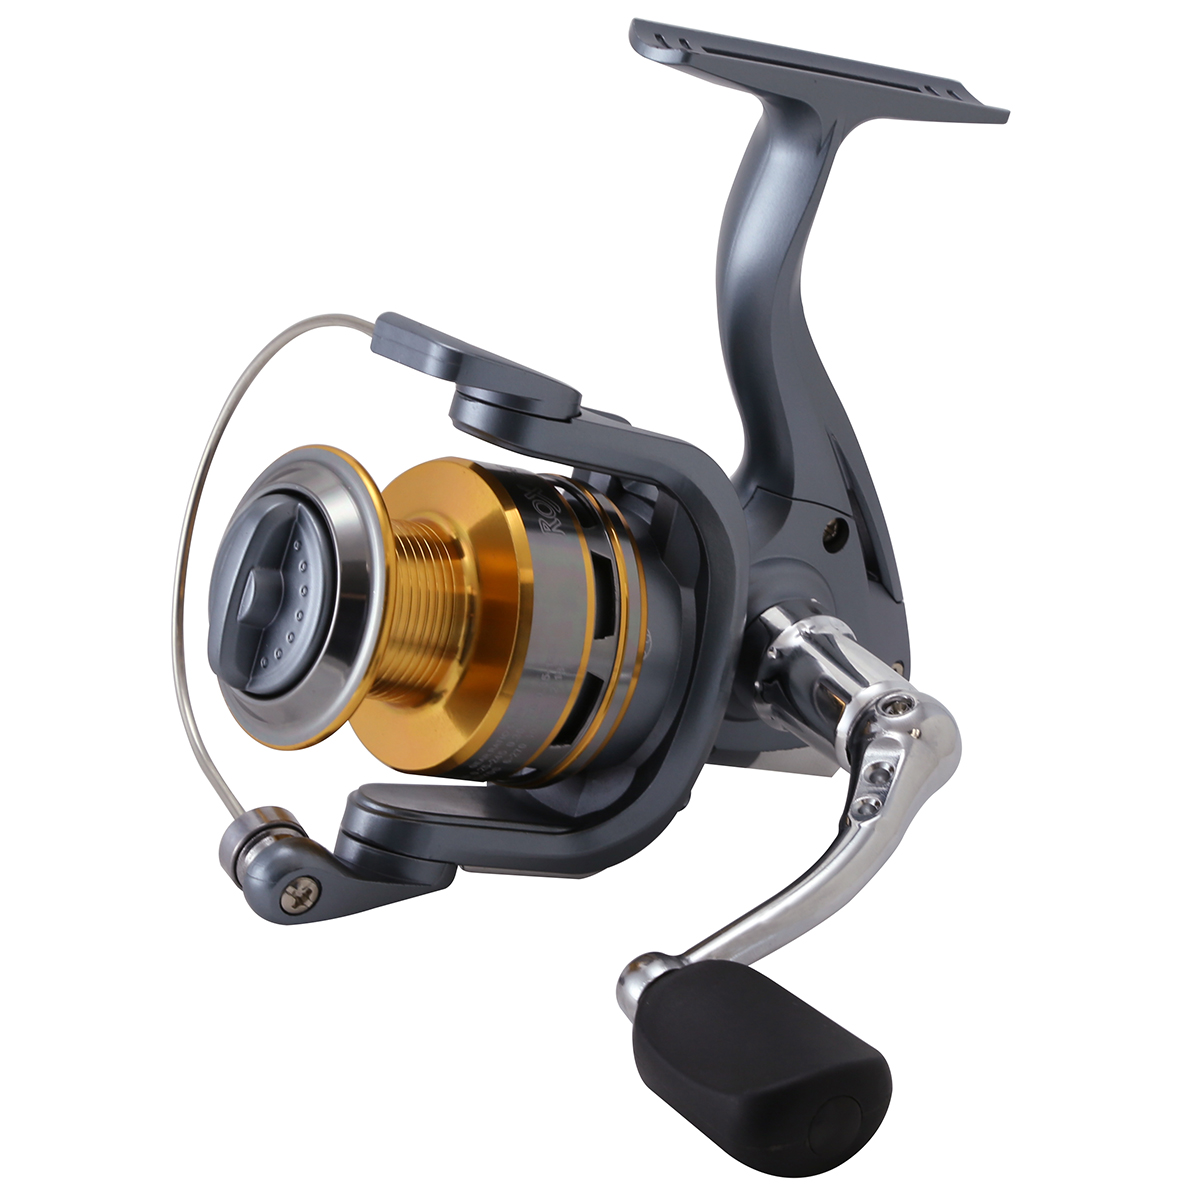 Fishing rods and reels rox spinning reel manufacturer for Fishing rods and reels